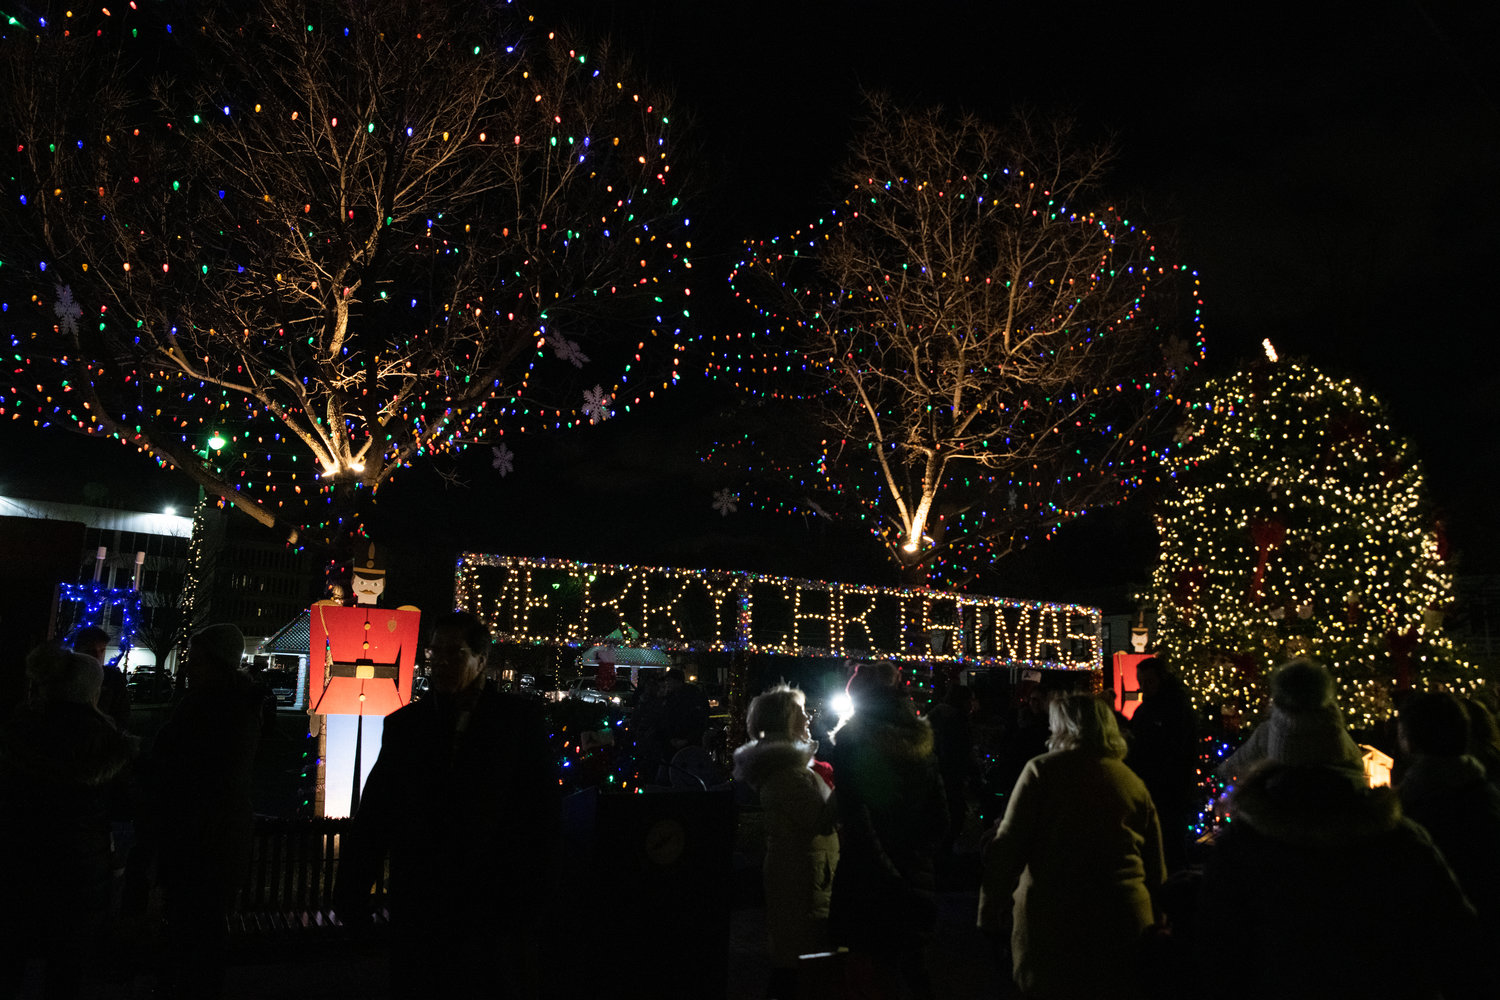 Lights lined Stauderman Avenue in Lynbrook to usher in the joyous season.